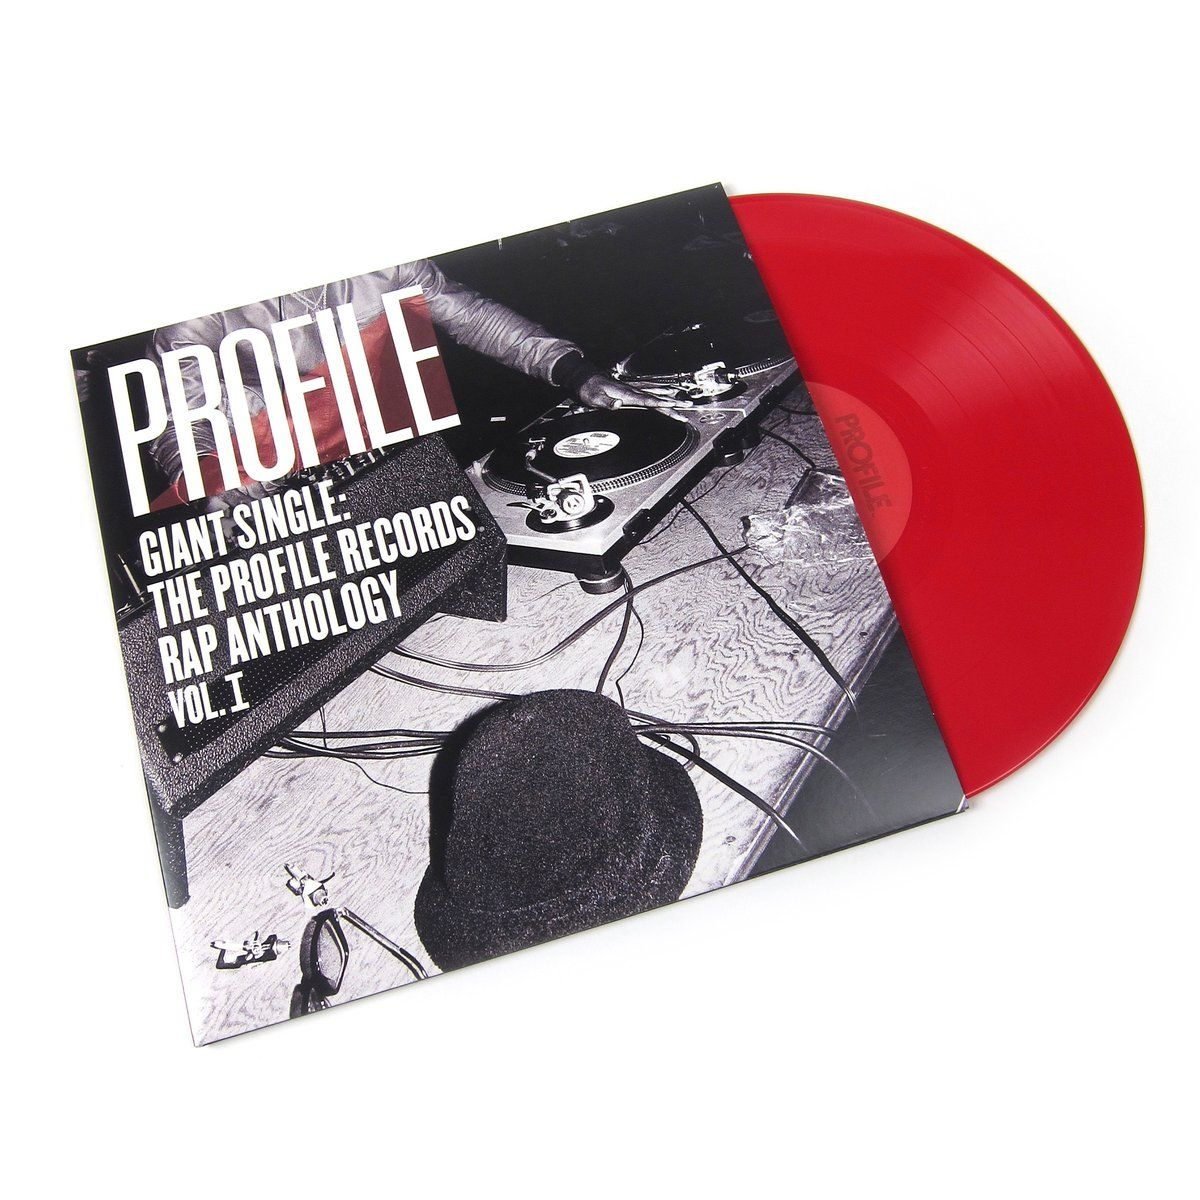 Profile Records Giant Single Profile Records Rap Anthology Vol 1 Colored Vinyl Vinyl 2lp Record Store Day Record Store Anthology Records